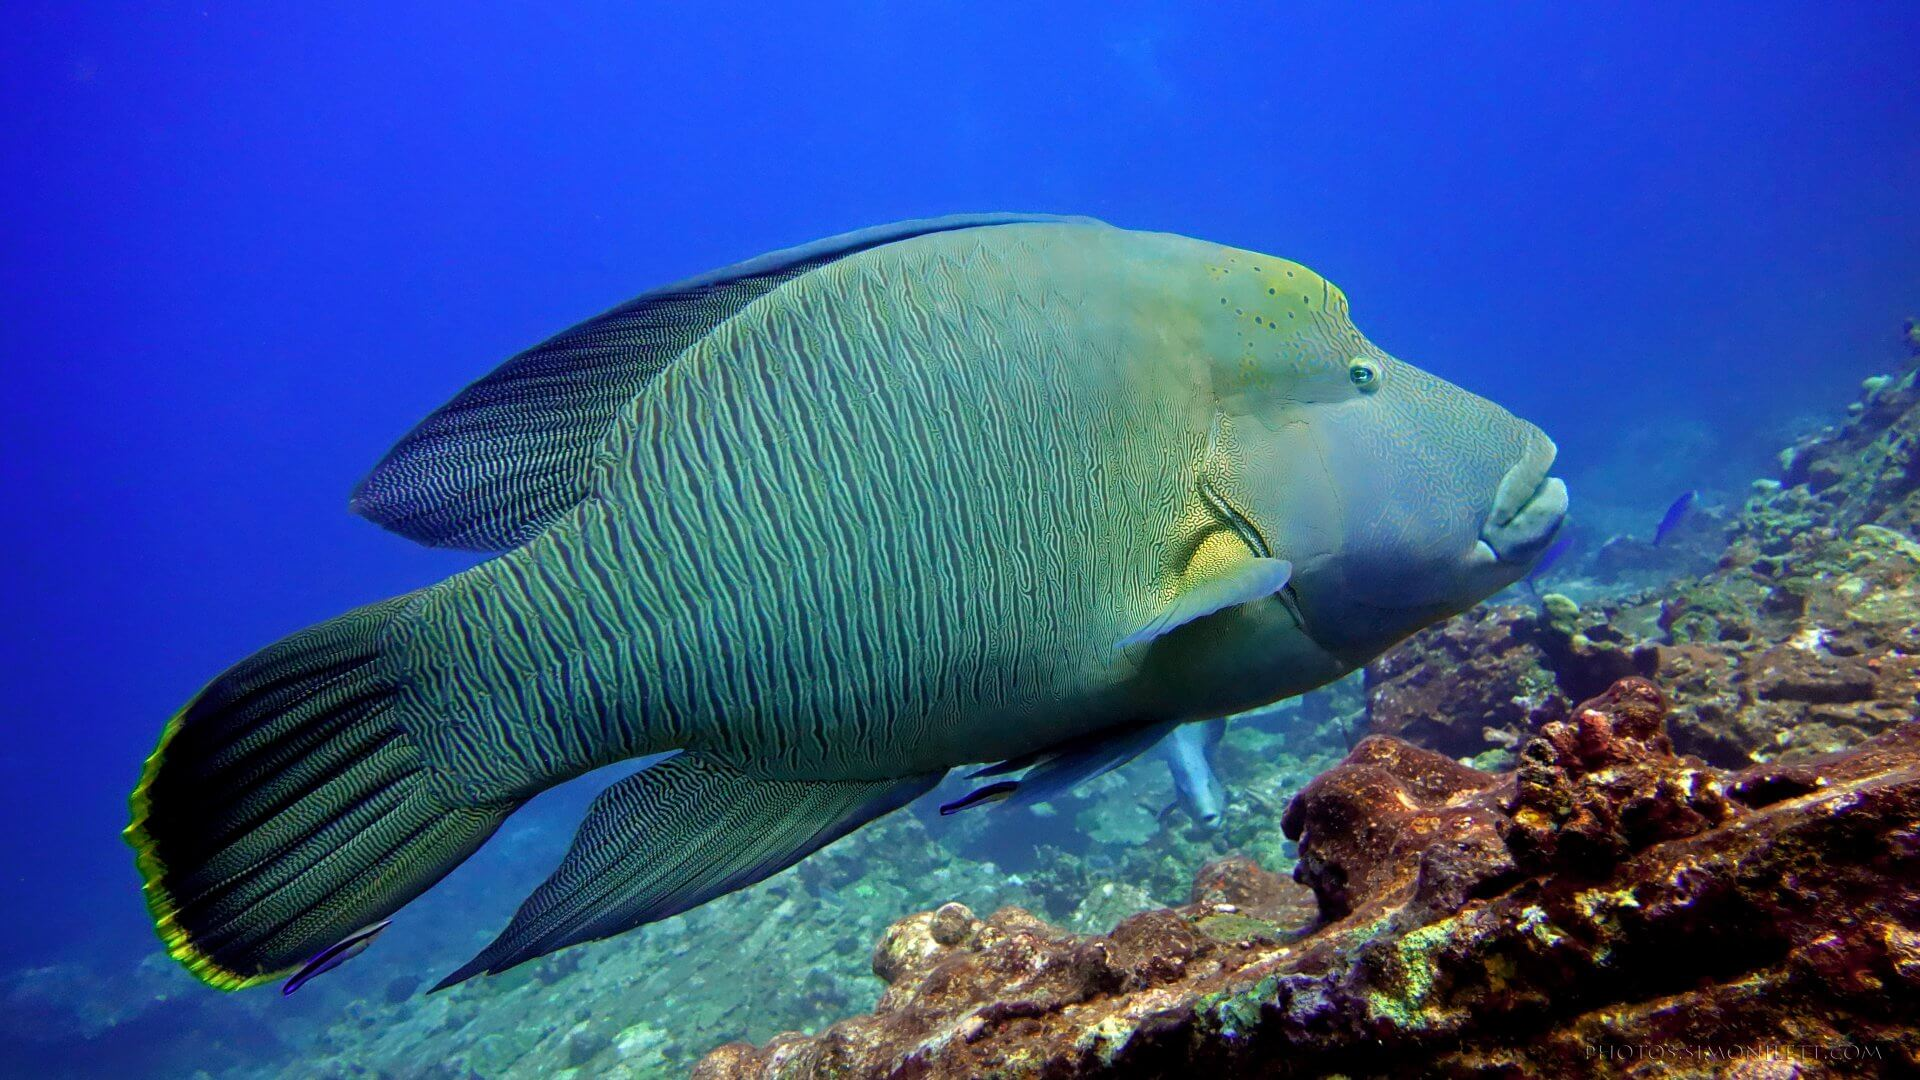 Humphead Wrasse, Also Known As Napoleon Wrasse